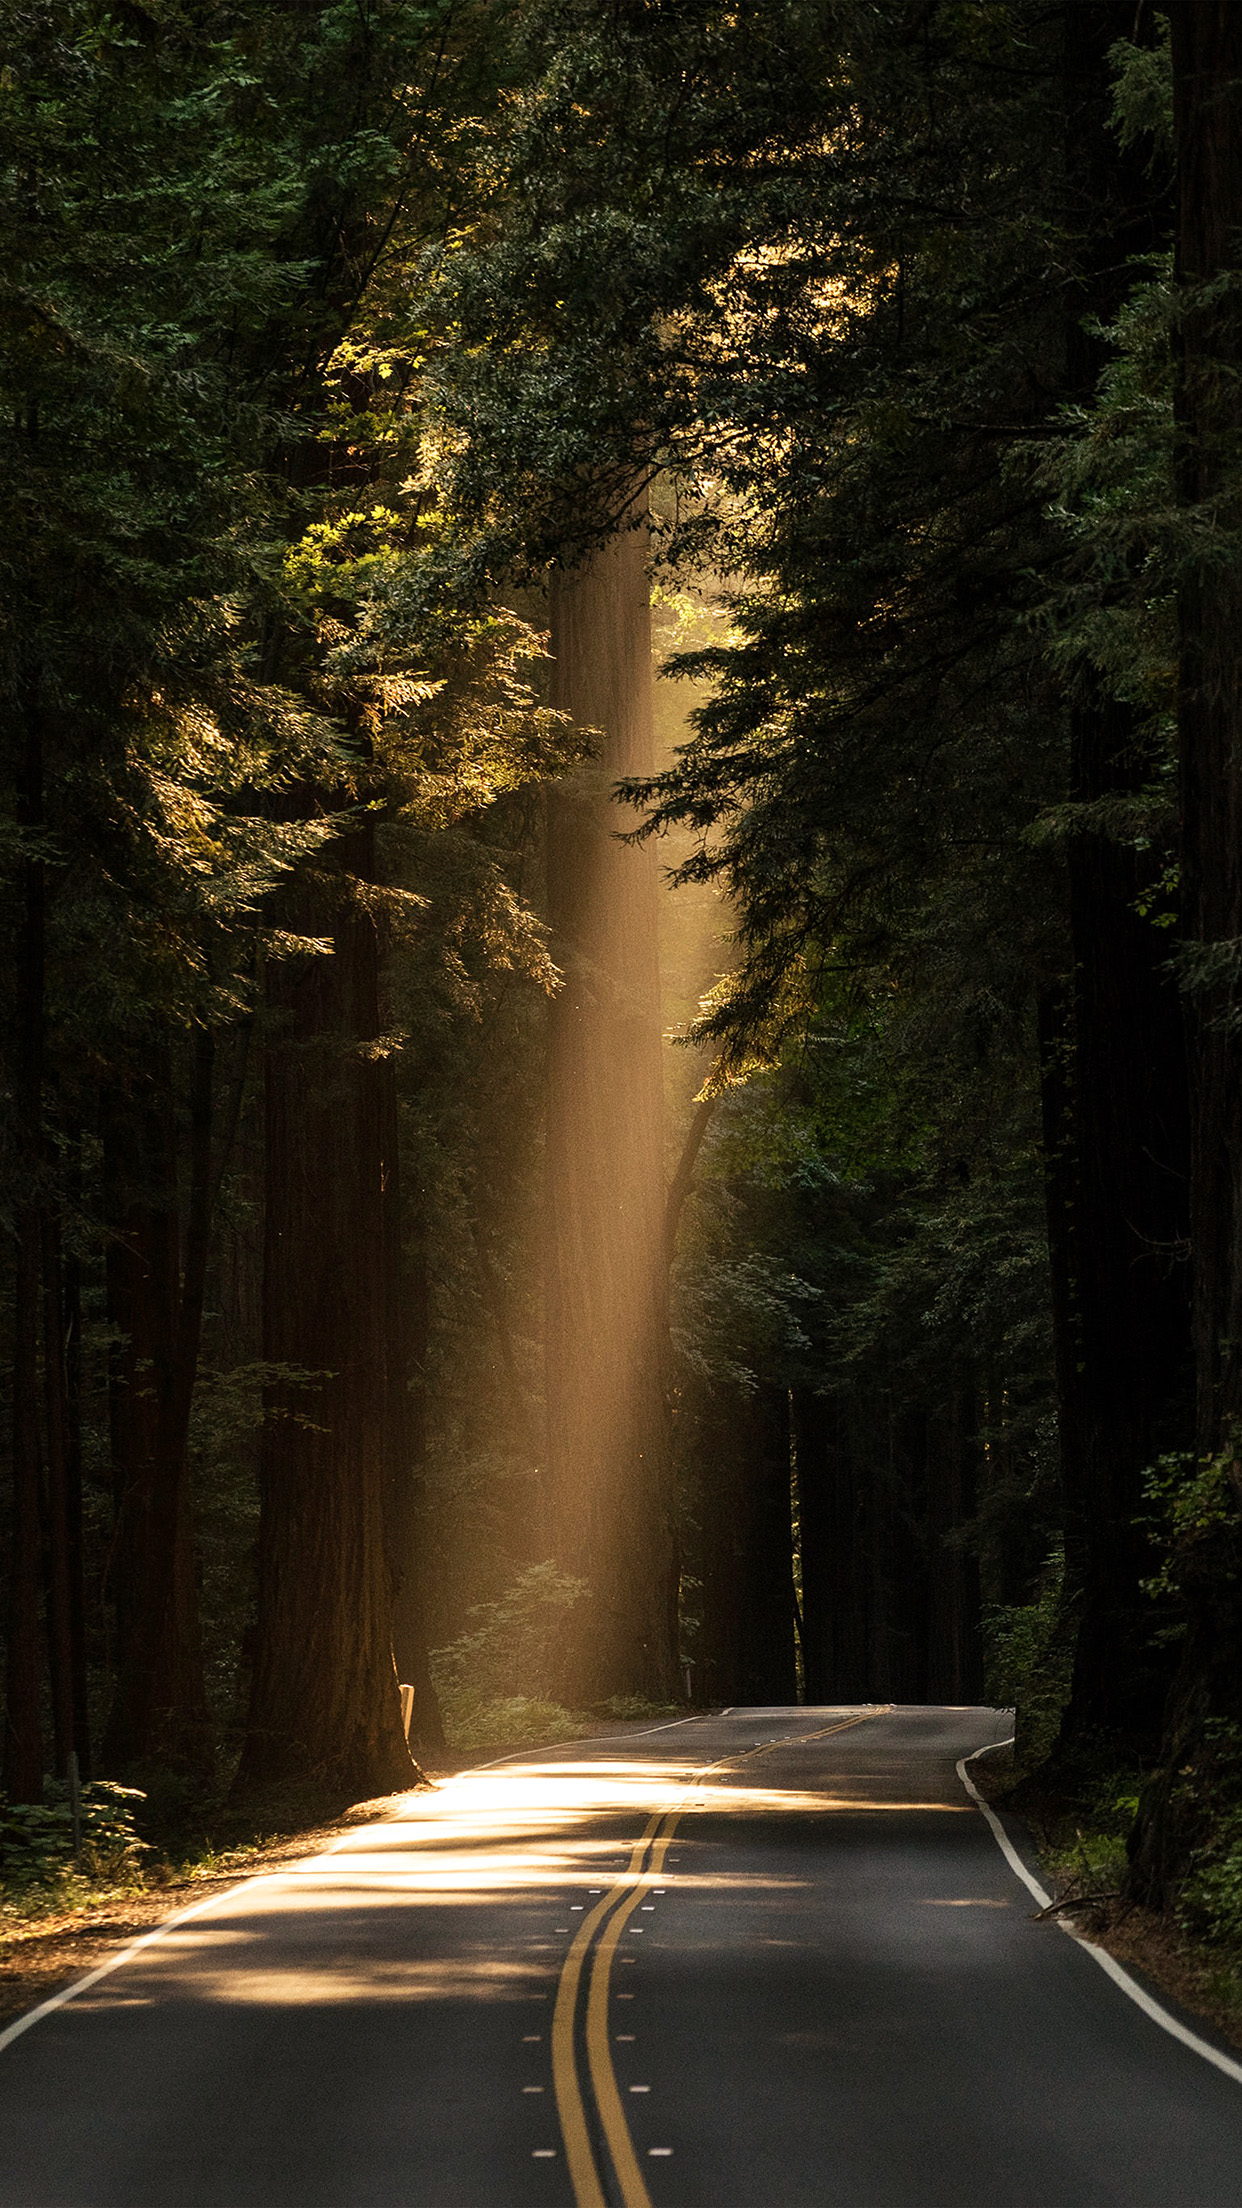 3d Art Street Wallpapers Papers Co Iphone Wallpaper Nh17 Light Road Wood Forest